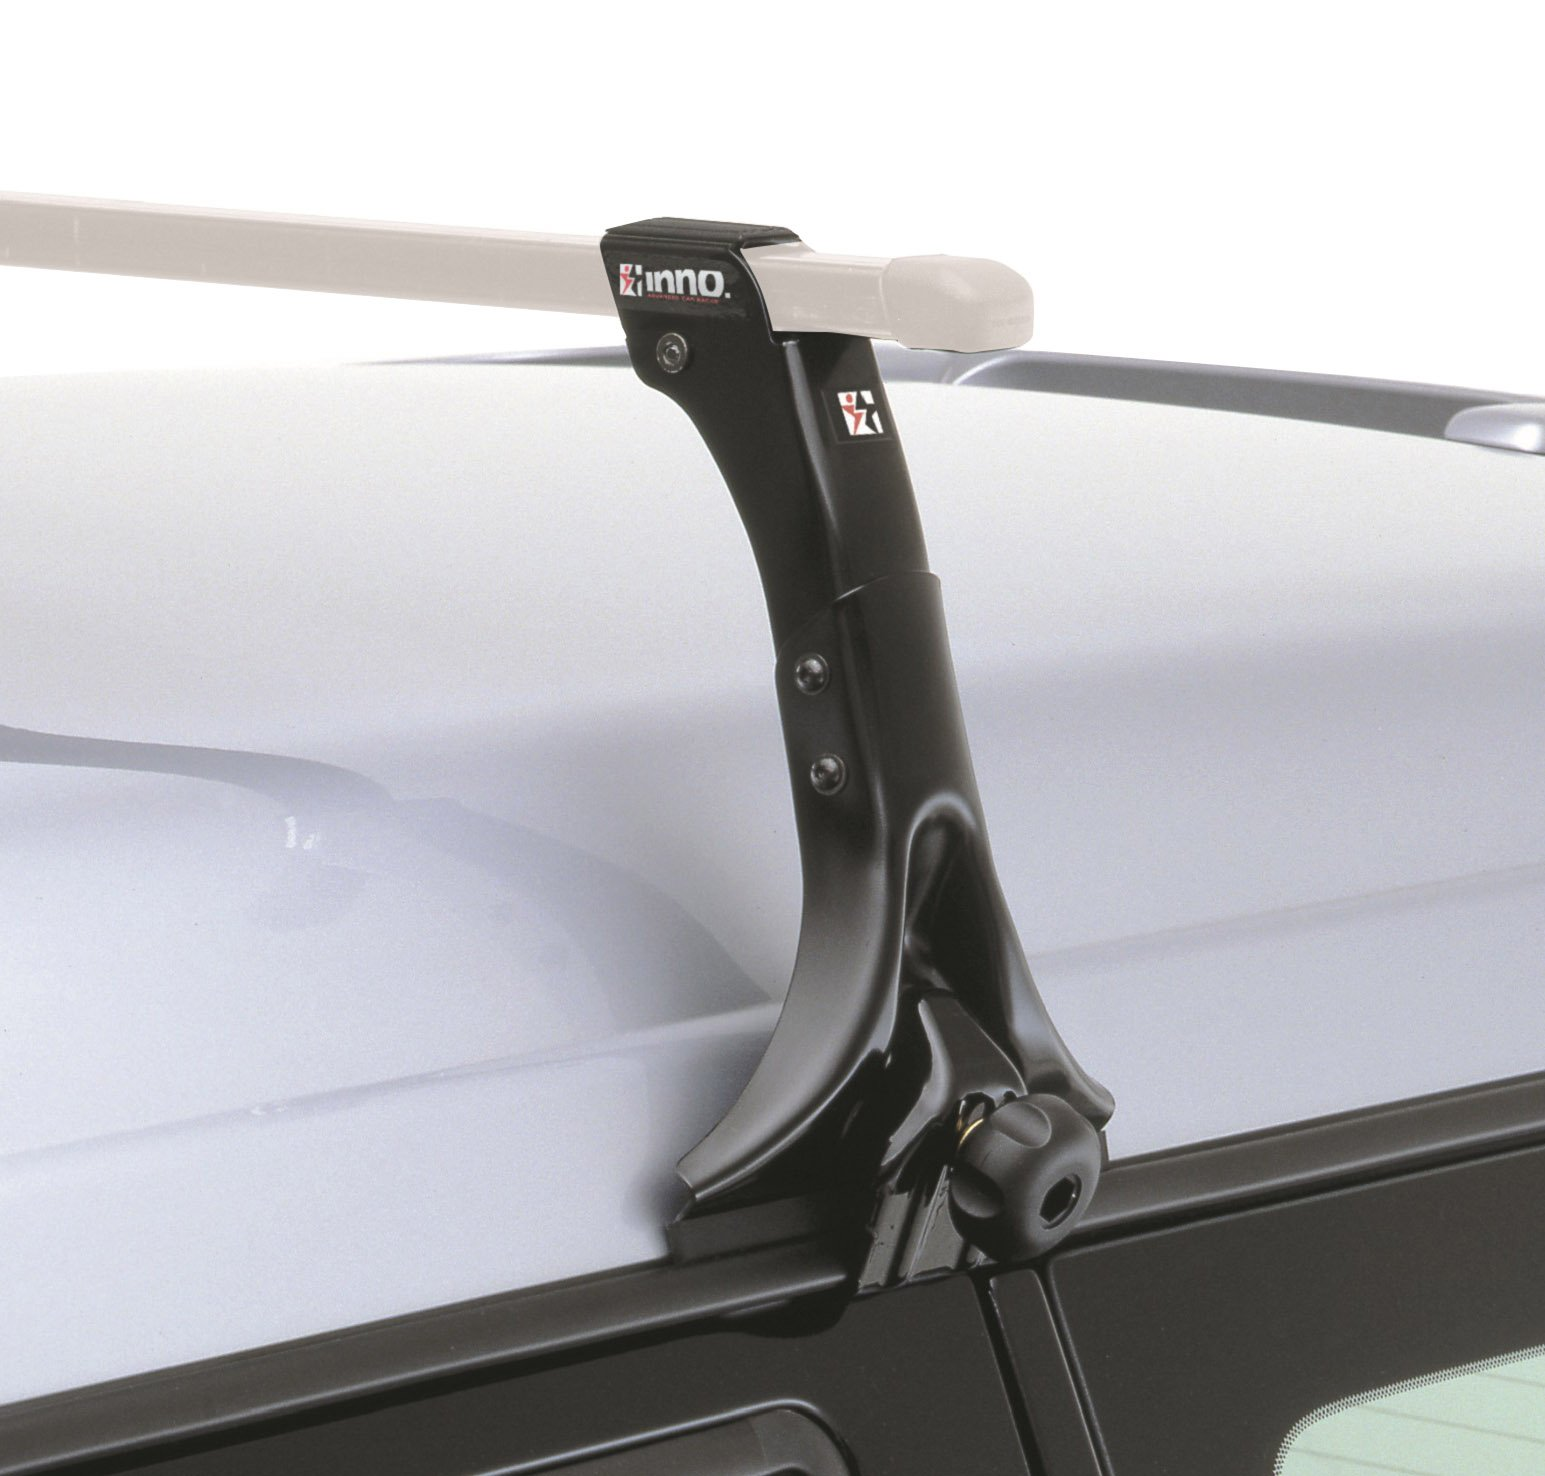 INNO 4 Pack of Roof Rack Stays with Locking System for Clearance On Vehicles, 11 Inch (Black) by INNO